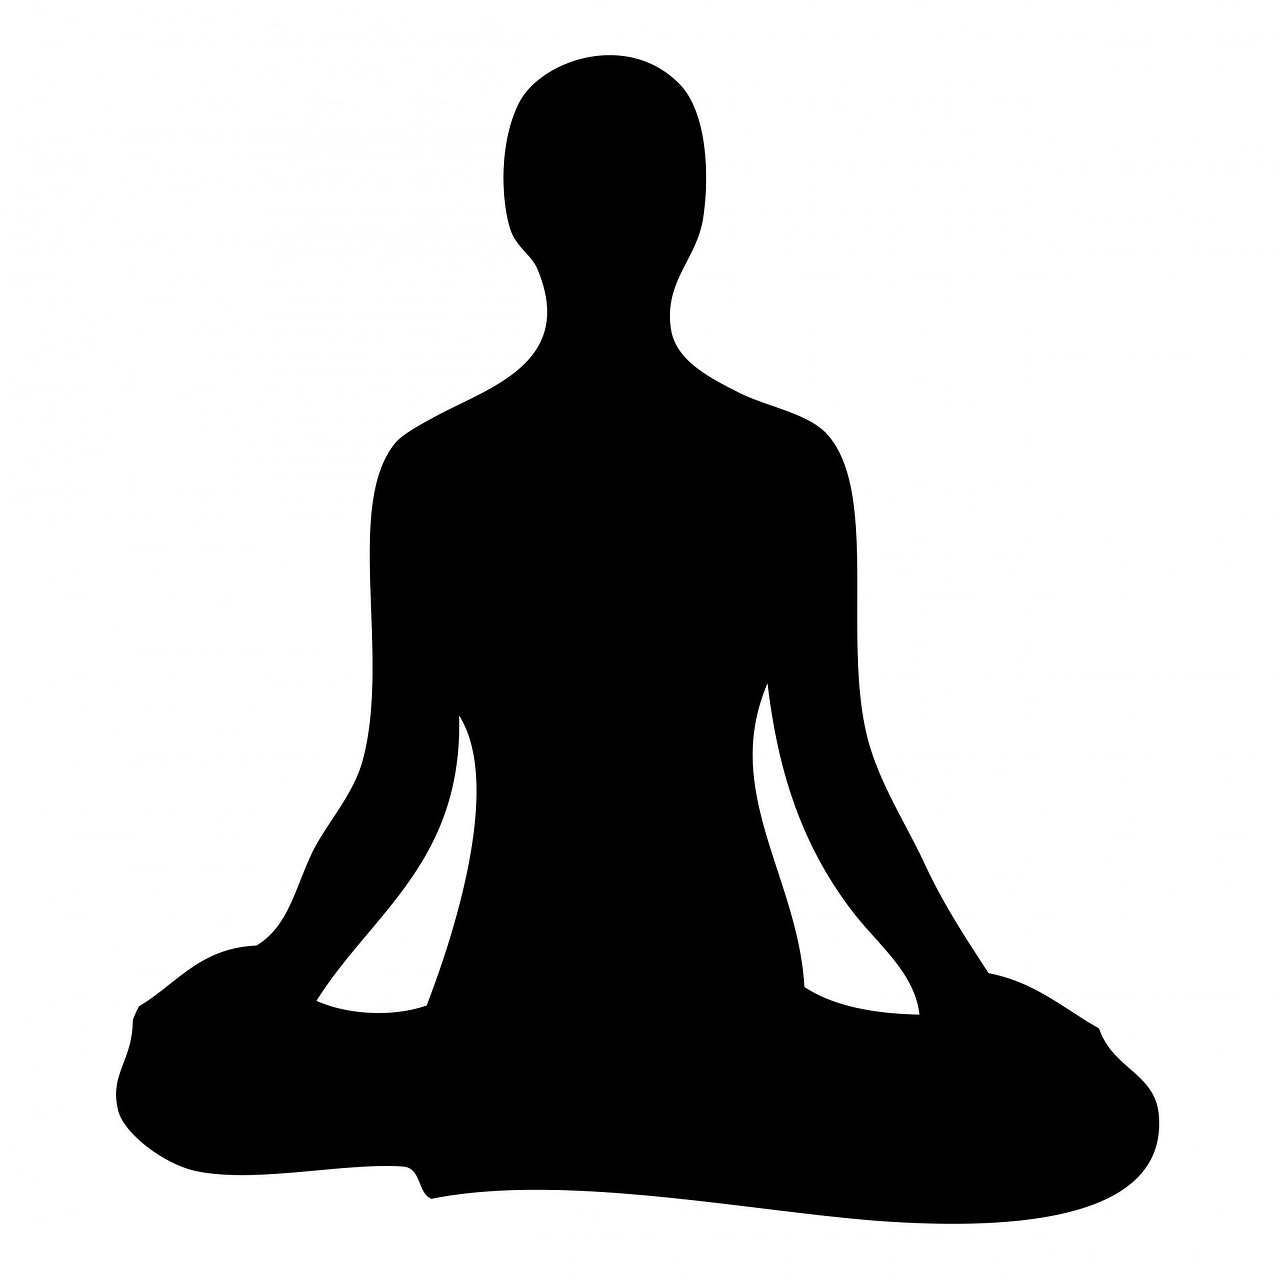 clipart black and white stock Meditation clipart yogasana. Collection of free fluctuability